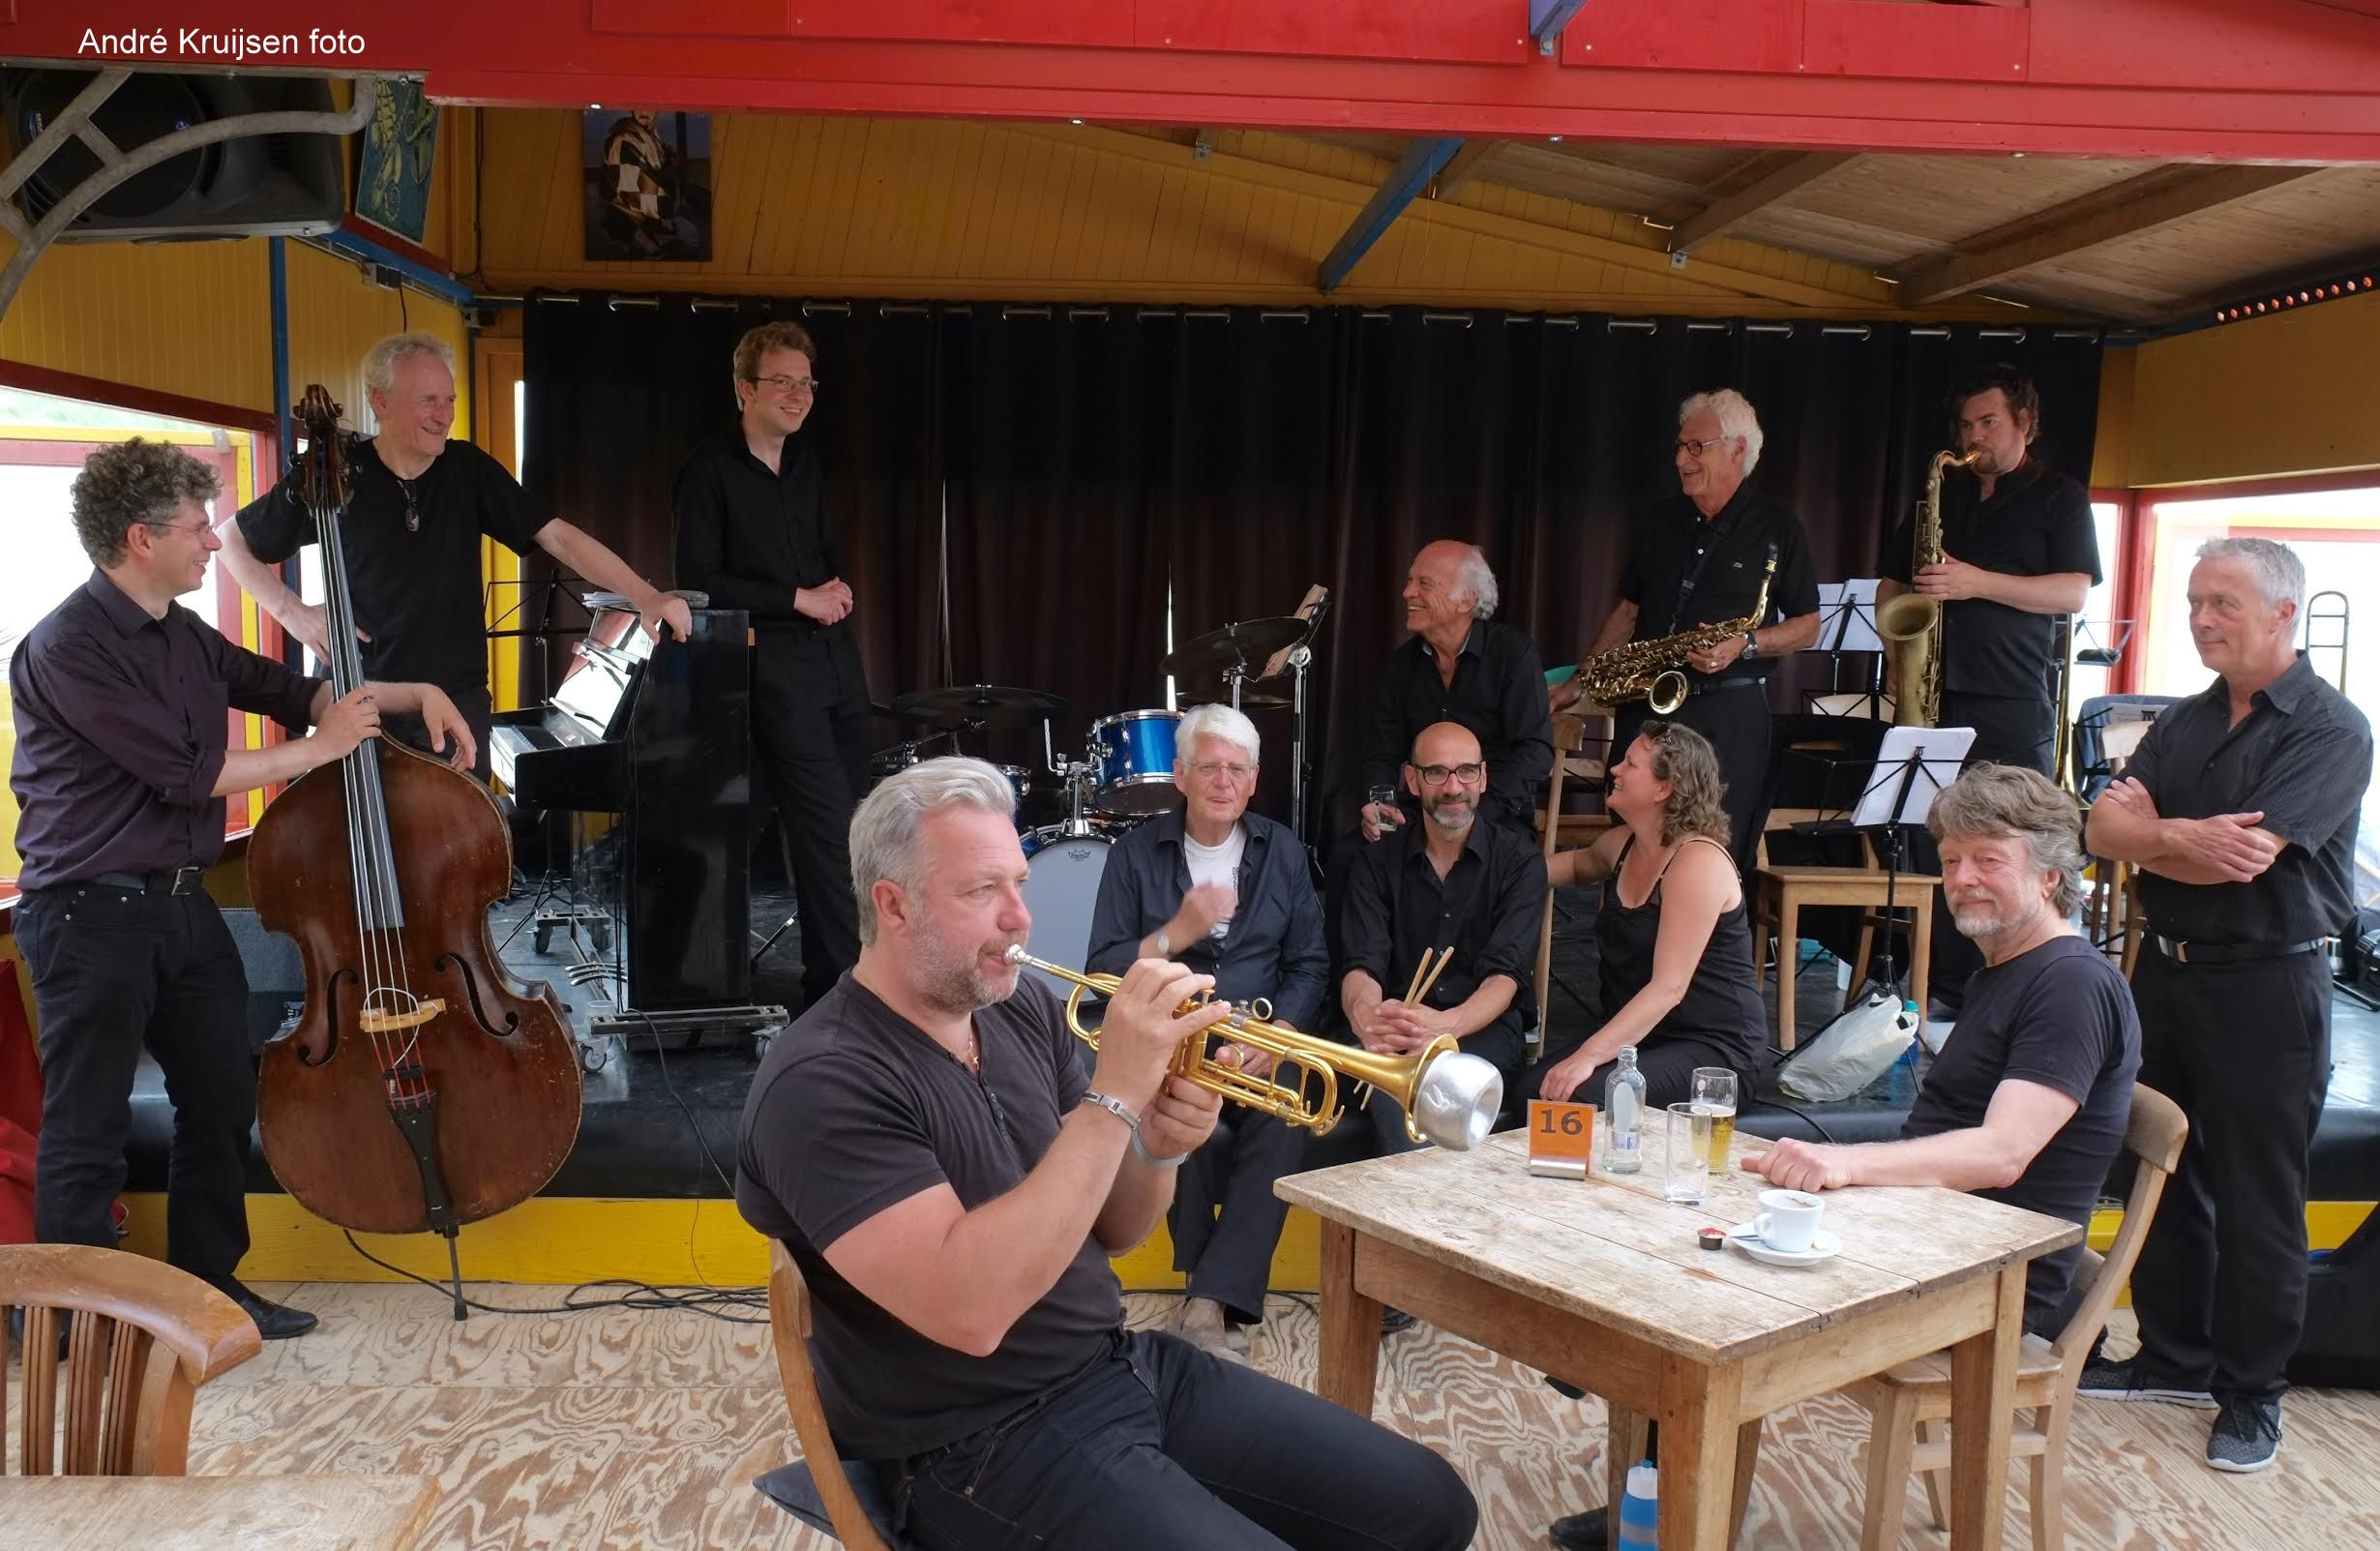 The Hague Jazz Project